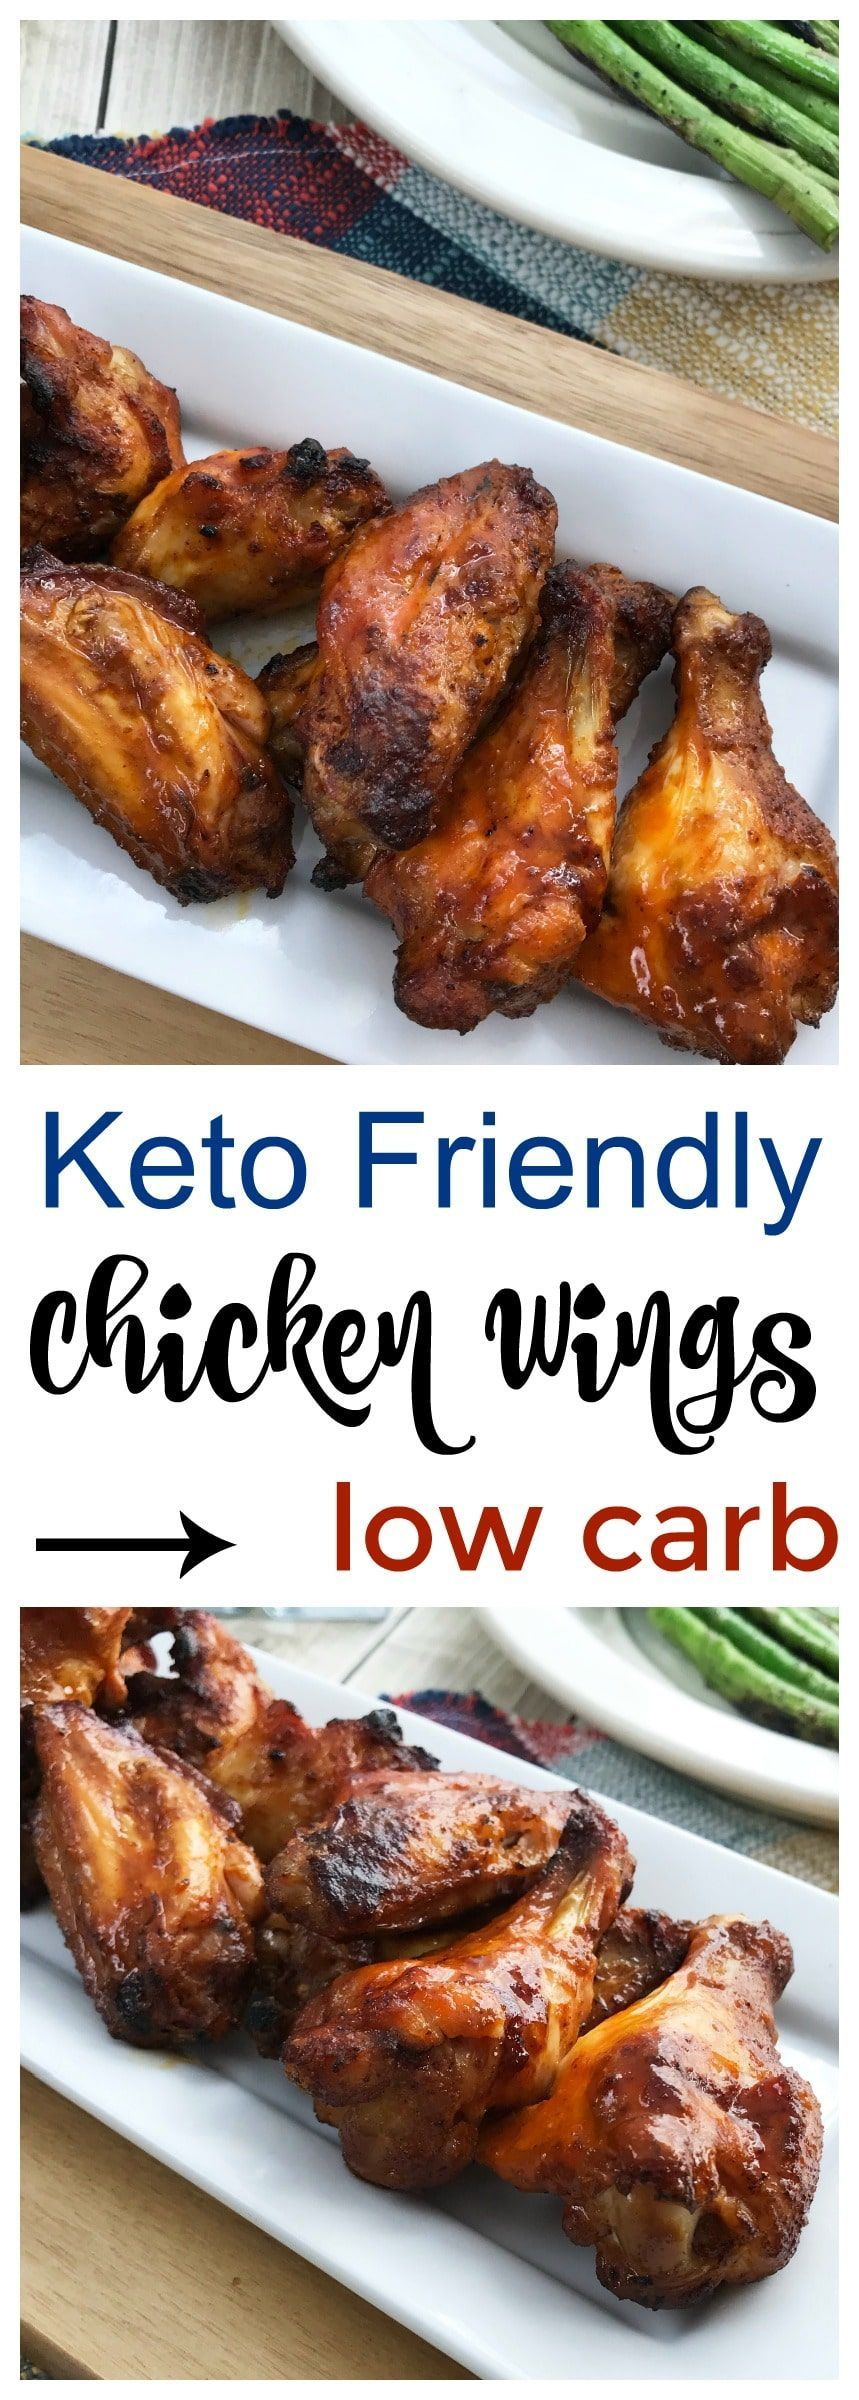 Chicken Wings Keto Chicken Wings are delicious and the perfect addition to football season, holiday parties, and get togethers. / Low Carb Chicken Wings / Keto Appetizers / Low Carb AppetizersKeto Chicken Wings are delicious and the perfect addition to football season, holiday parties, and get togethers. / Low Carb Chicken Wings / Keto Appetizers...